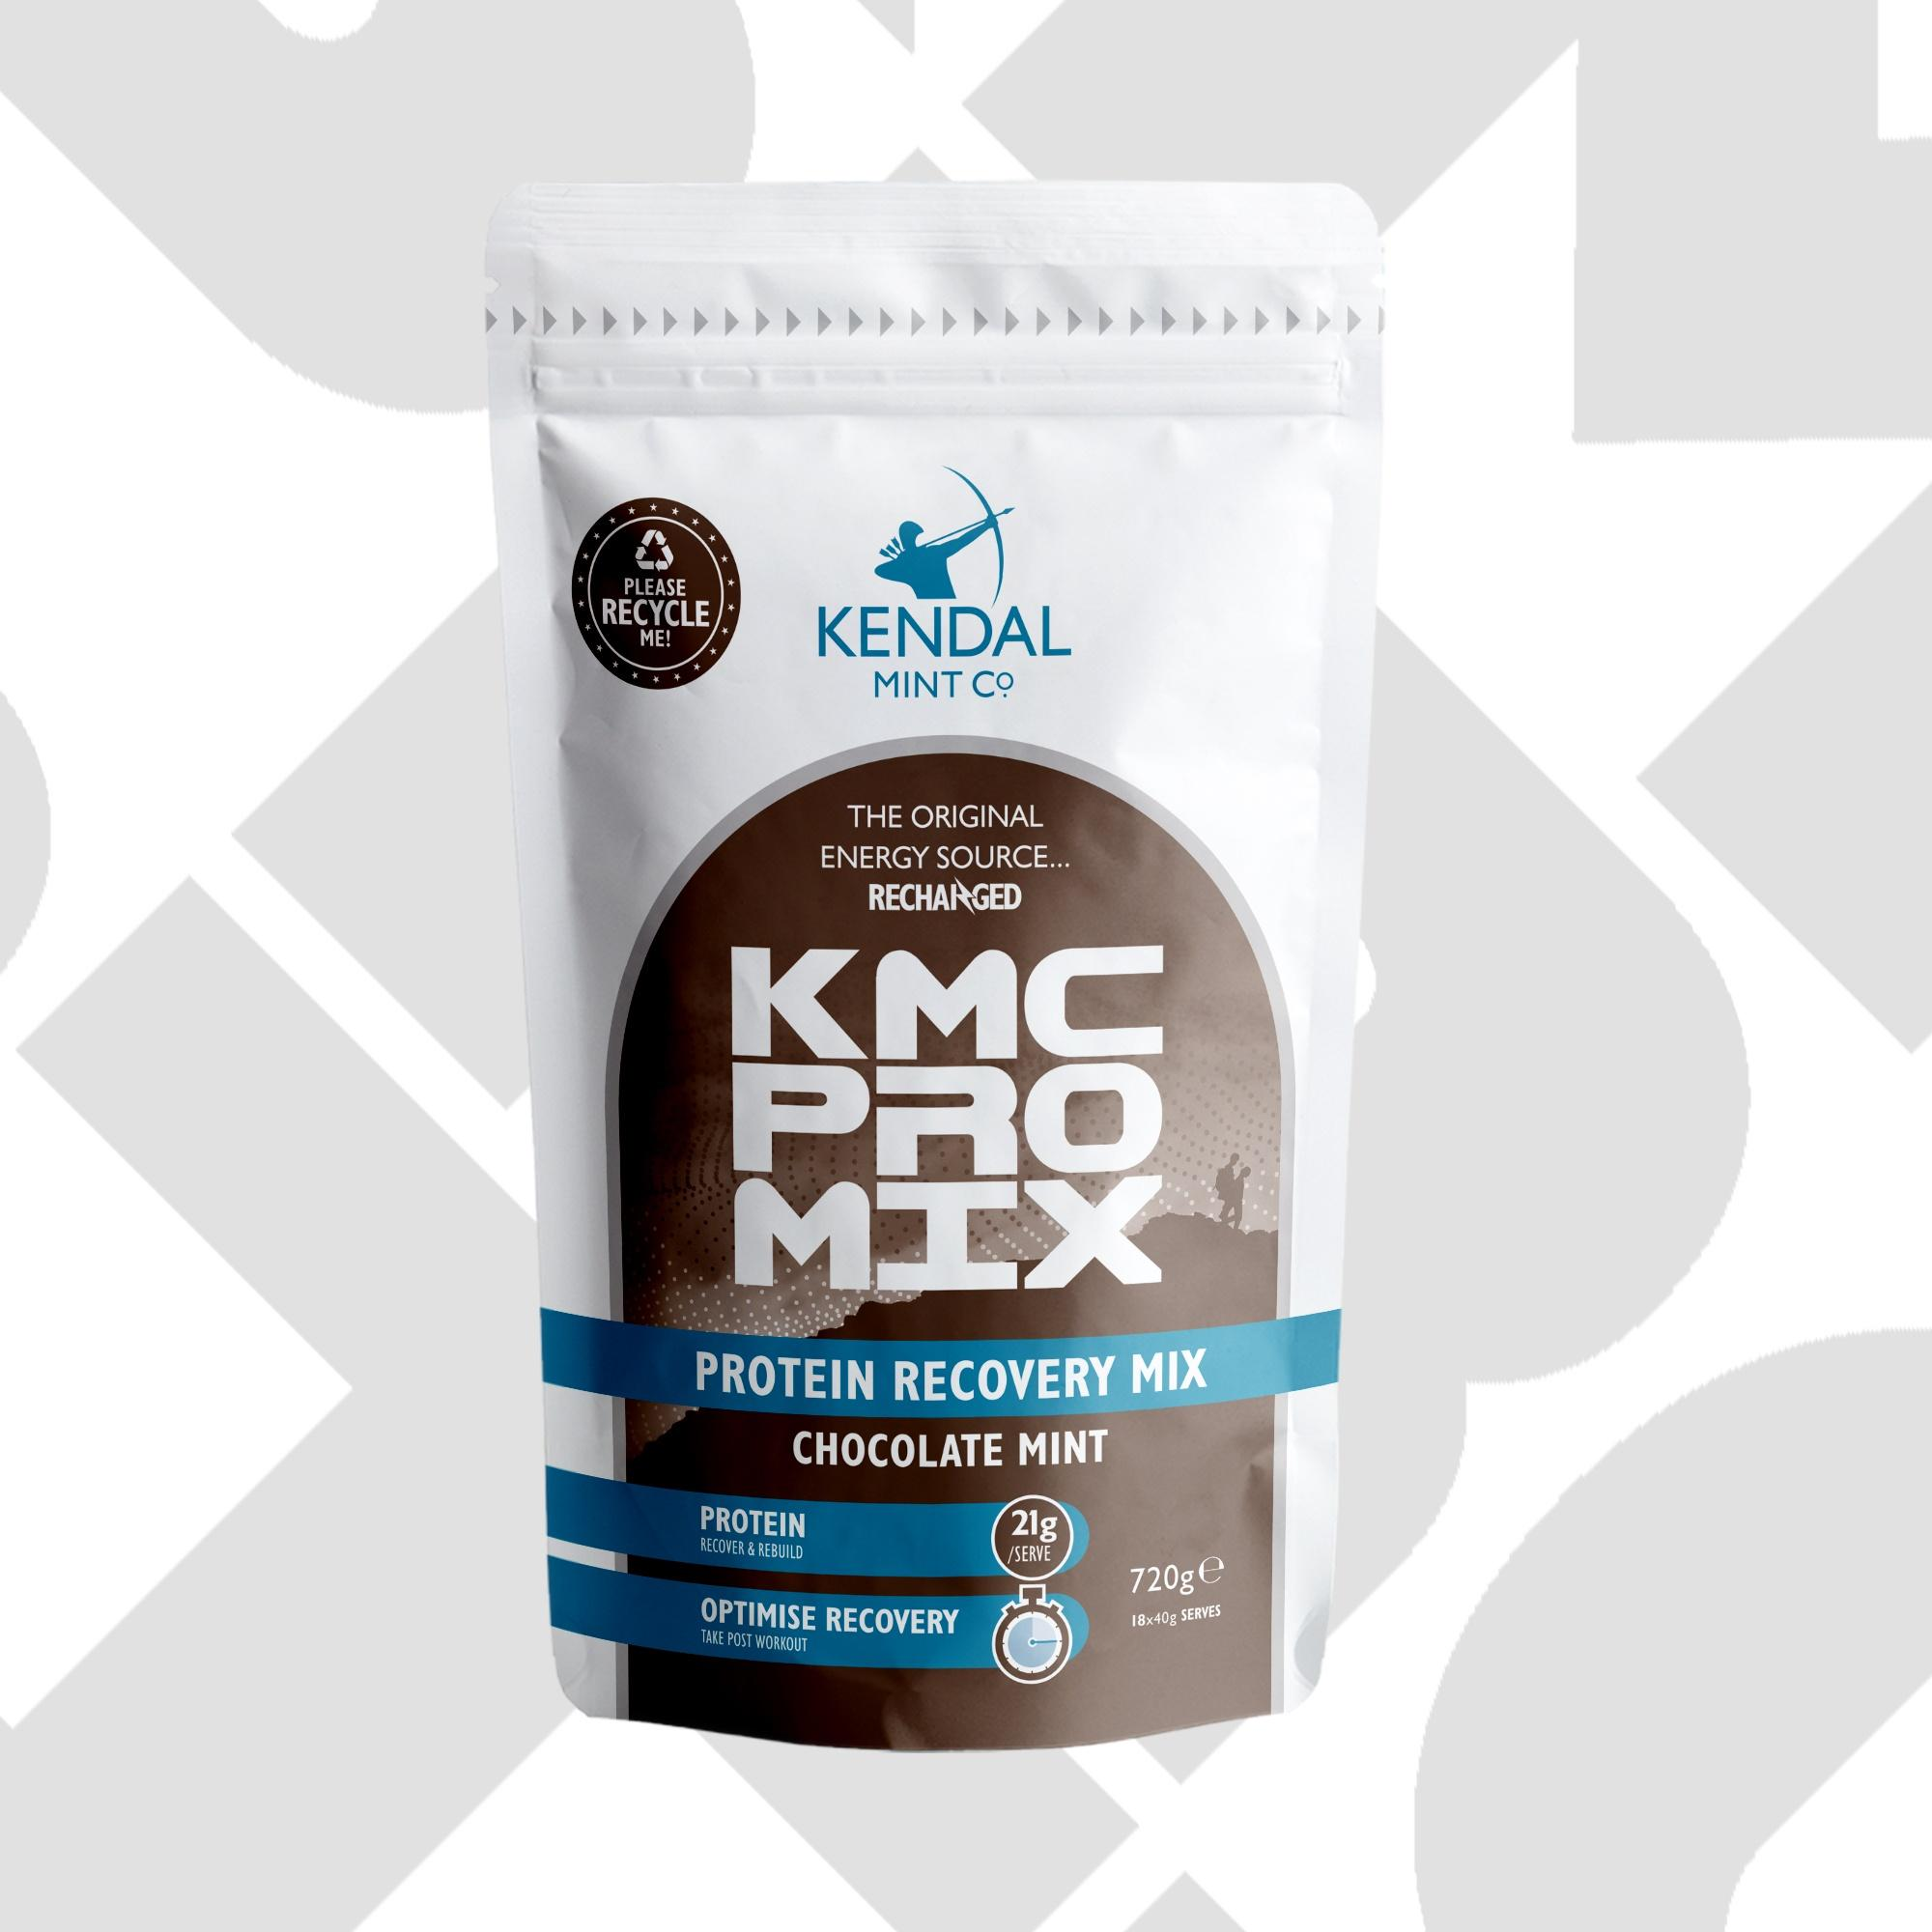 KMC PRO MIX: Chocolate Mint - Protein Packed Recovery Powder 720g Bag